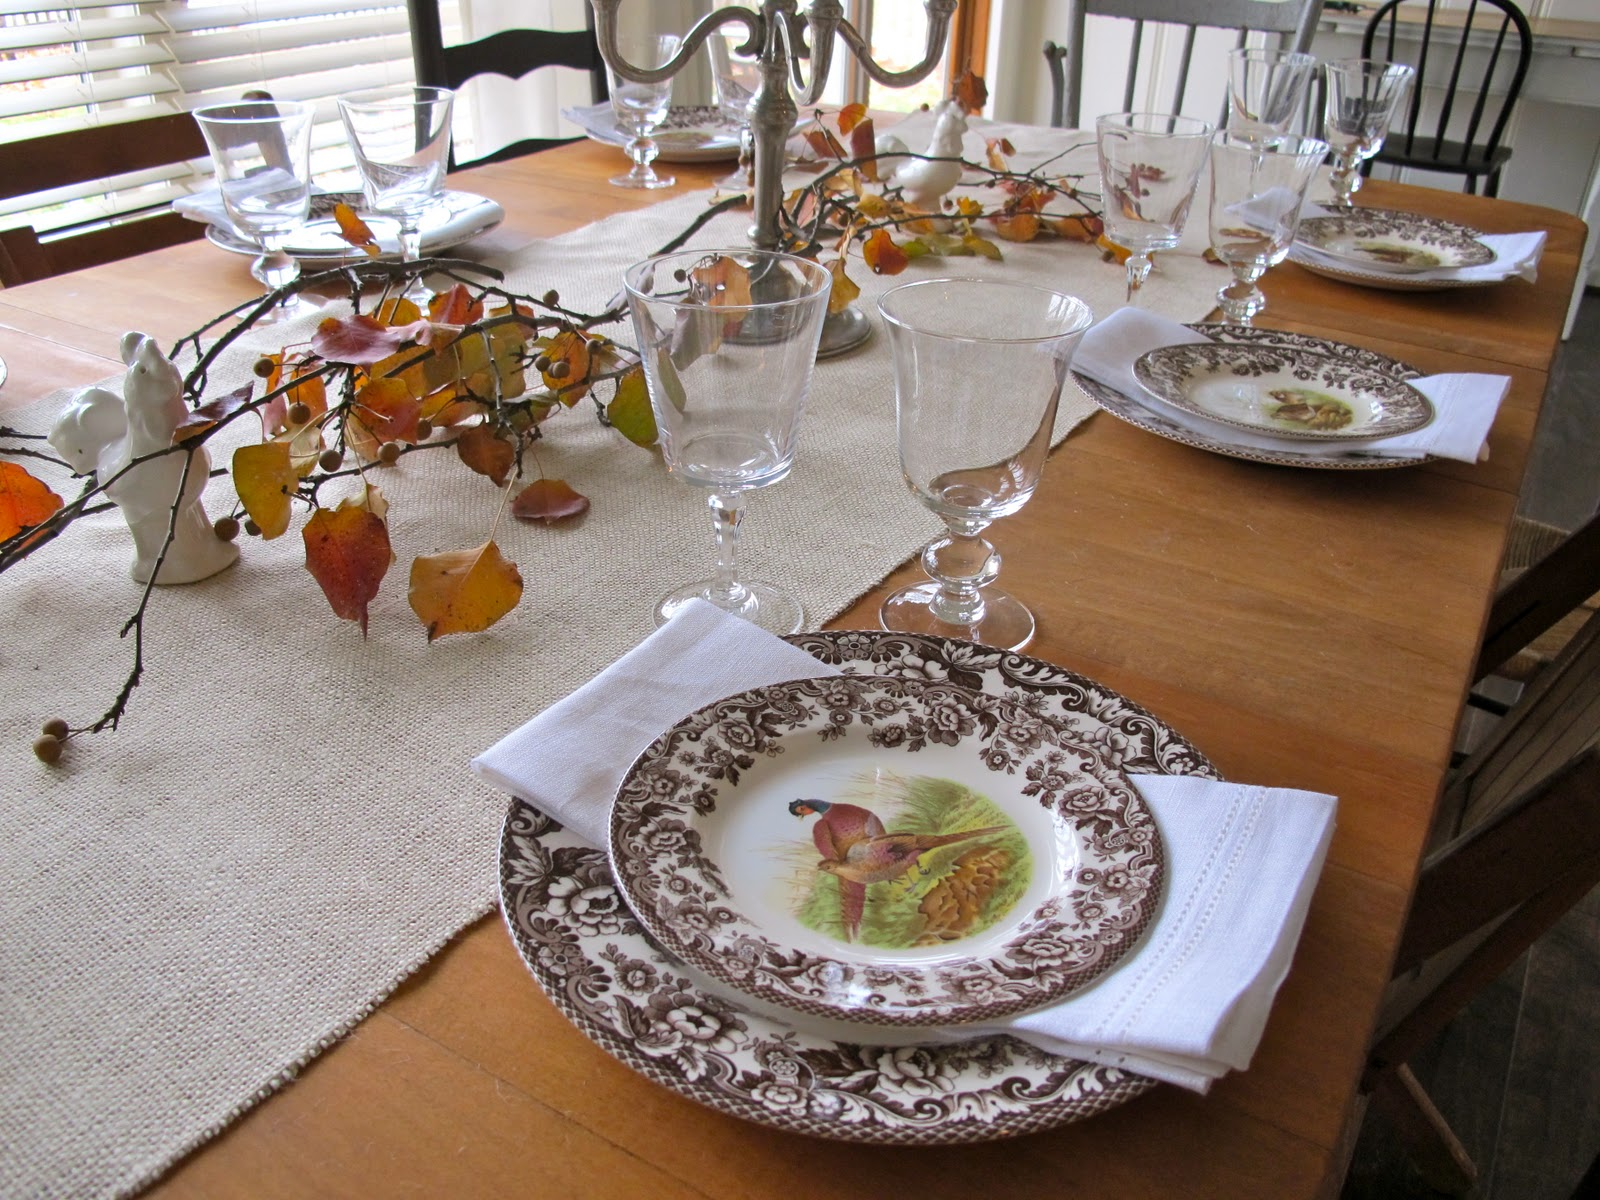 Holidays | Entertaining | Thanksgiving Planner | Countdown Day 3 | Table Setting Tools \u0026 Inspiration | Thanksgiving Table Setting \u0026 House Decor & Jenny Steffens Hobick: Holidays | Entertaining | Thanksgiving ...